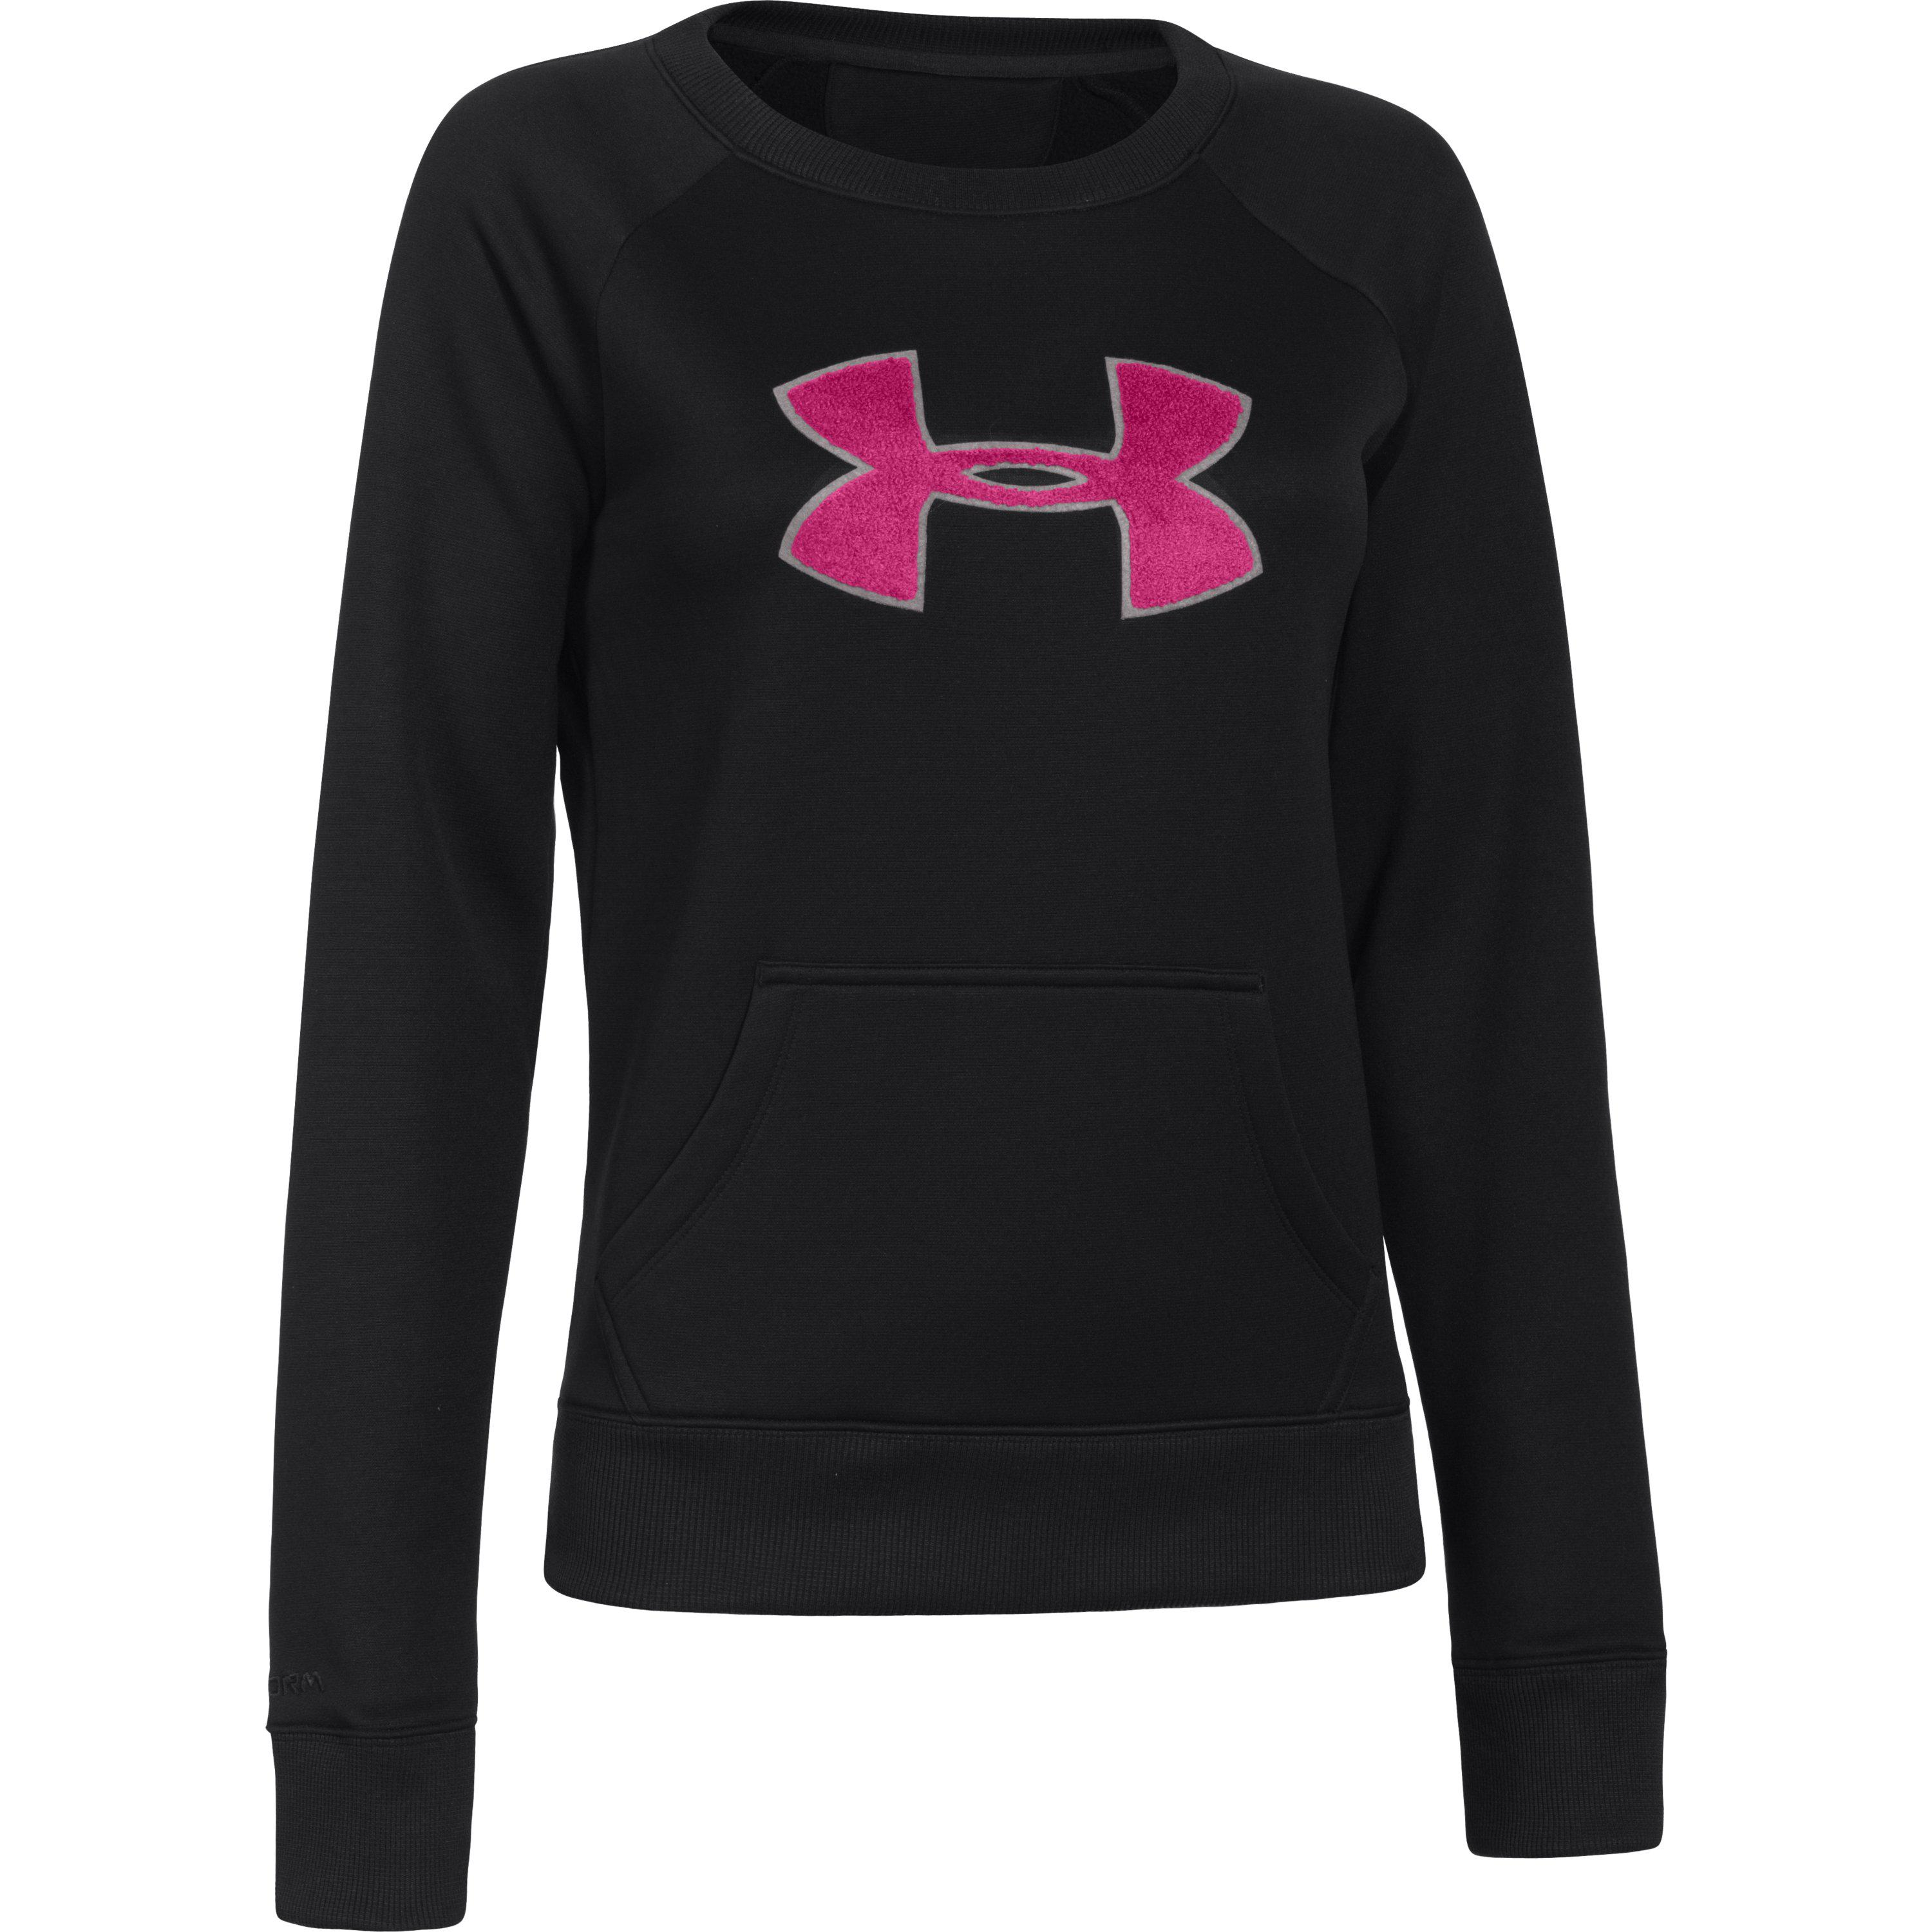 reputable site ea2a7 7d7fe Lyst - Under Armour Women s Ua Big Logo Letterman Crew in Black